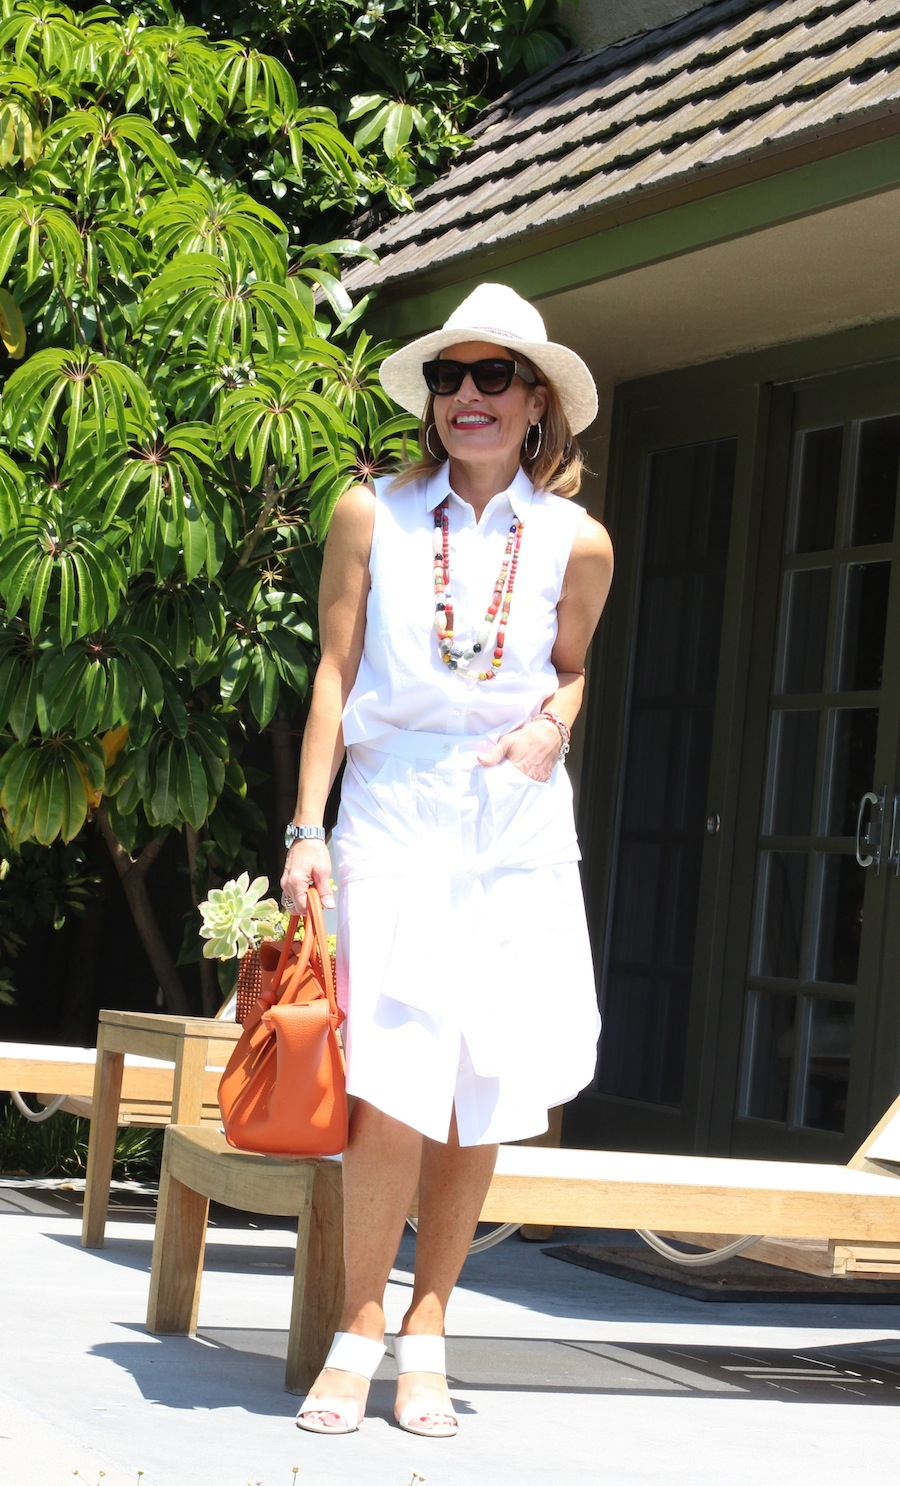 Top and Skirt T by Alexander Wang, Stuart Weitzman Sandals, CAbi Hat, Celine Sunglasses. Diane Cotton Beads and Celine Handbag both available at Savannah Santa Monica. John Hardy Bracelets and Hoops, also seen here.